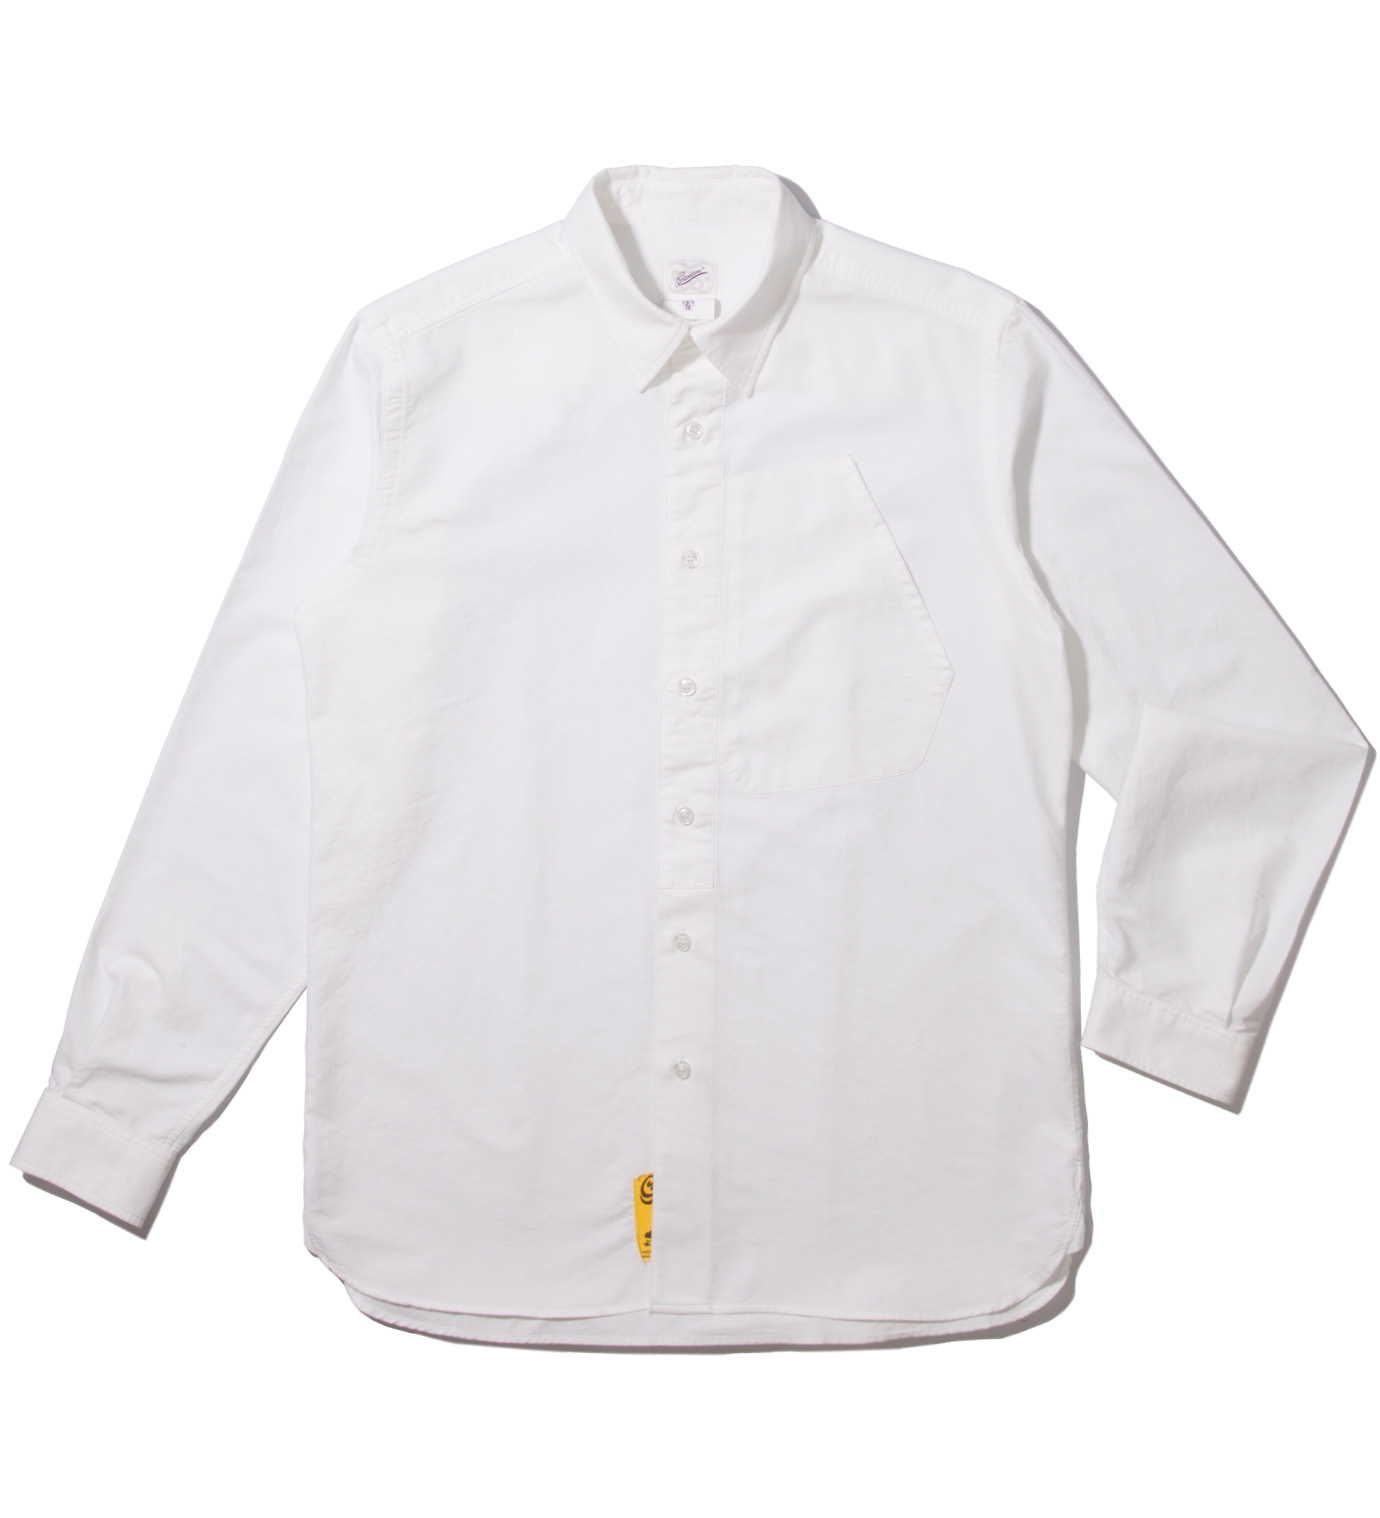 GARBSTORE White Factory Shirt